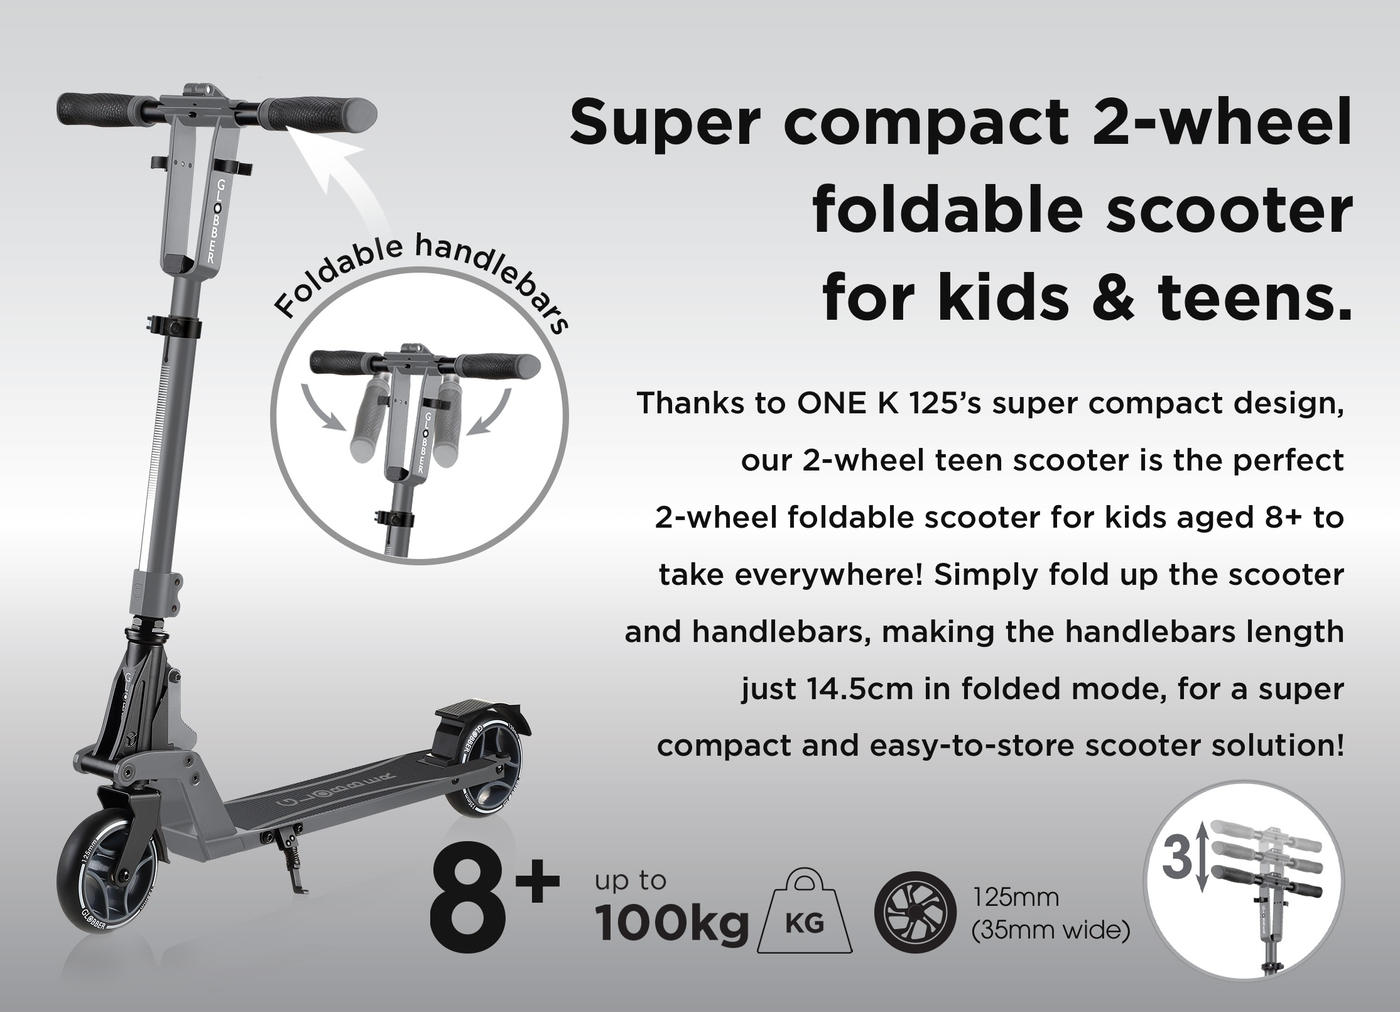 Super compact 2-wheel foldable scooter for kids & teens. Thanks to ONE K 125's super compact design, our 2-wheel teen scooter is the perfect 2-wheel foldable scooter for kids aged 8+ to take everywhere! Simply fold up the scooter and handlebars, making the handlebars length just 14.5cm in folded mode, for a super compact and easy-to-store scooter solution!